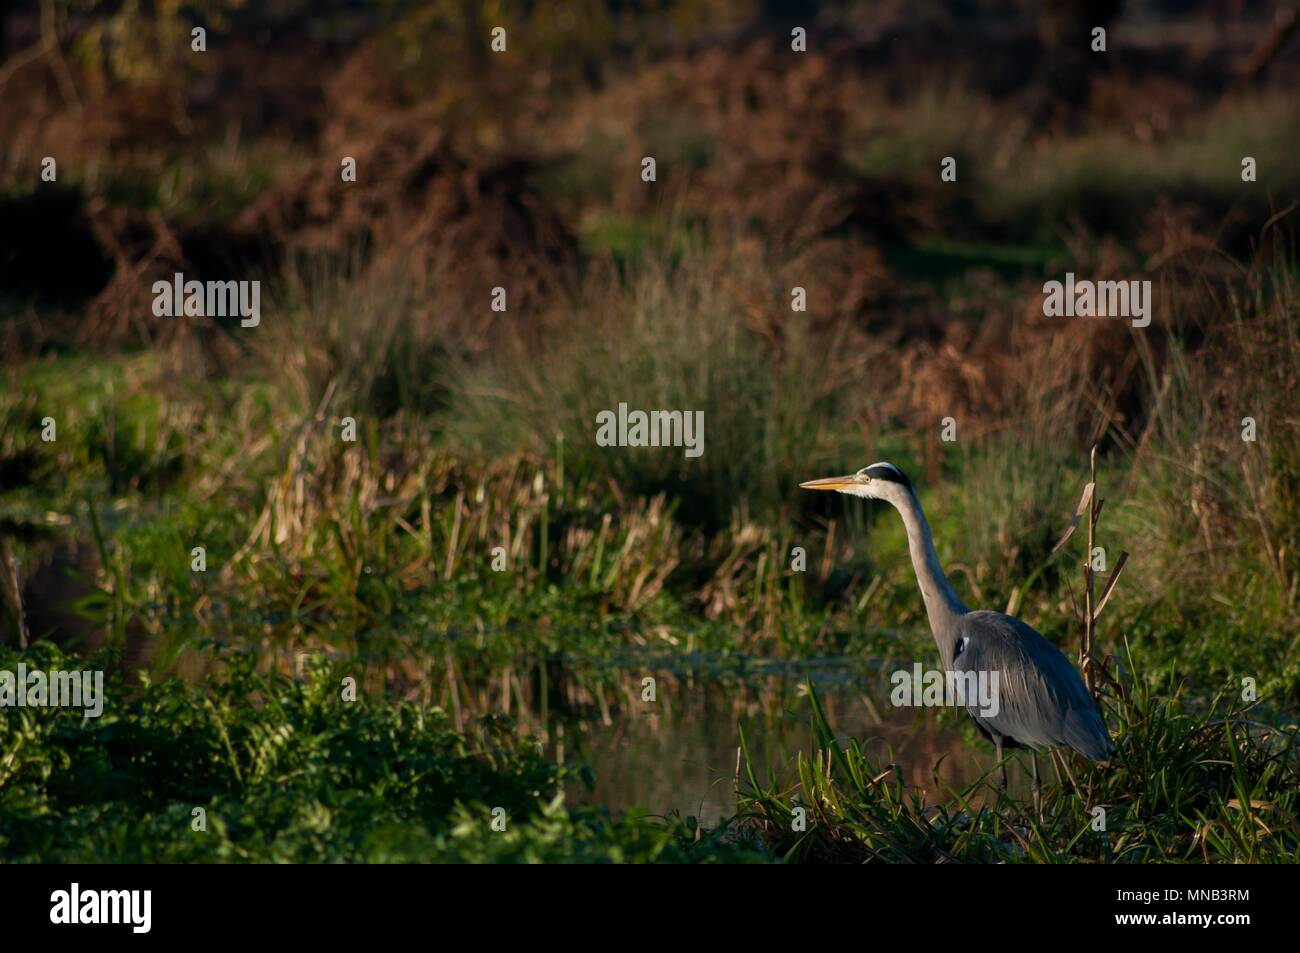 Heron Watching in the Distance, Bushy Park, Surrey - Stock Image